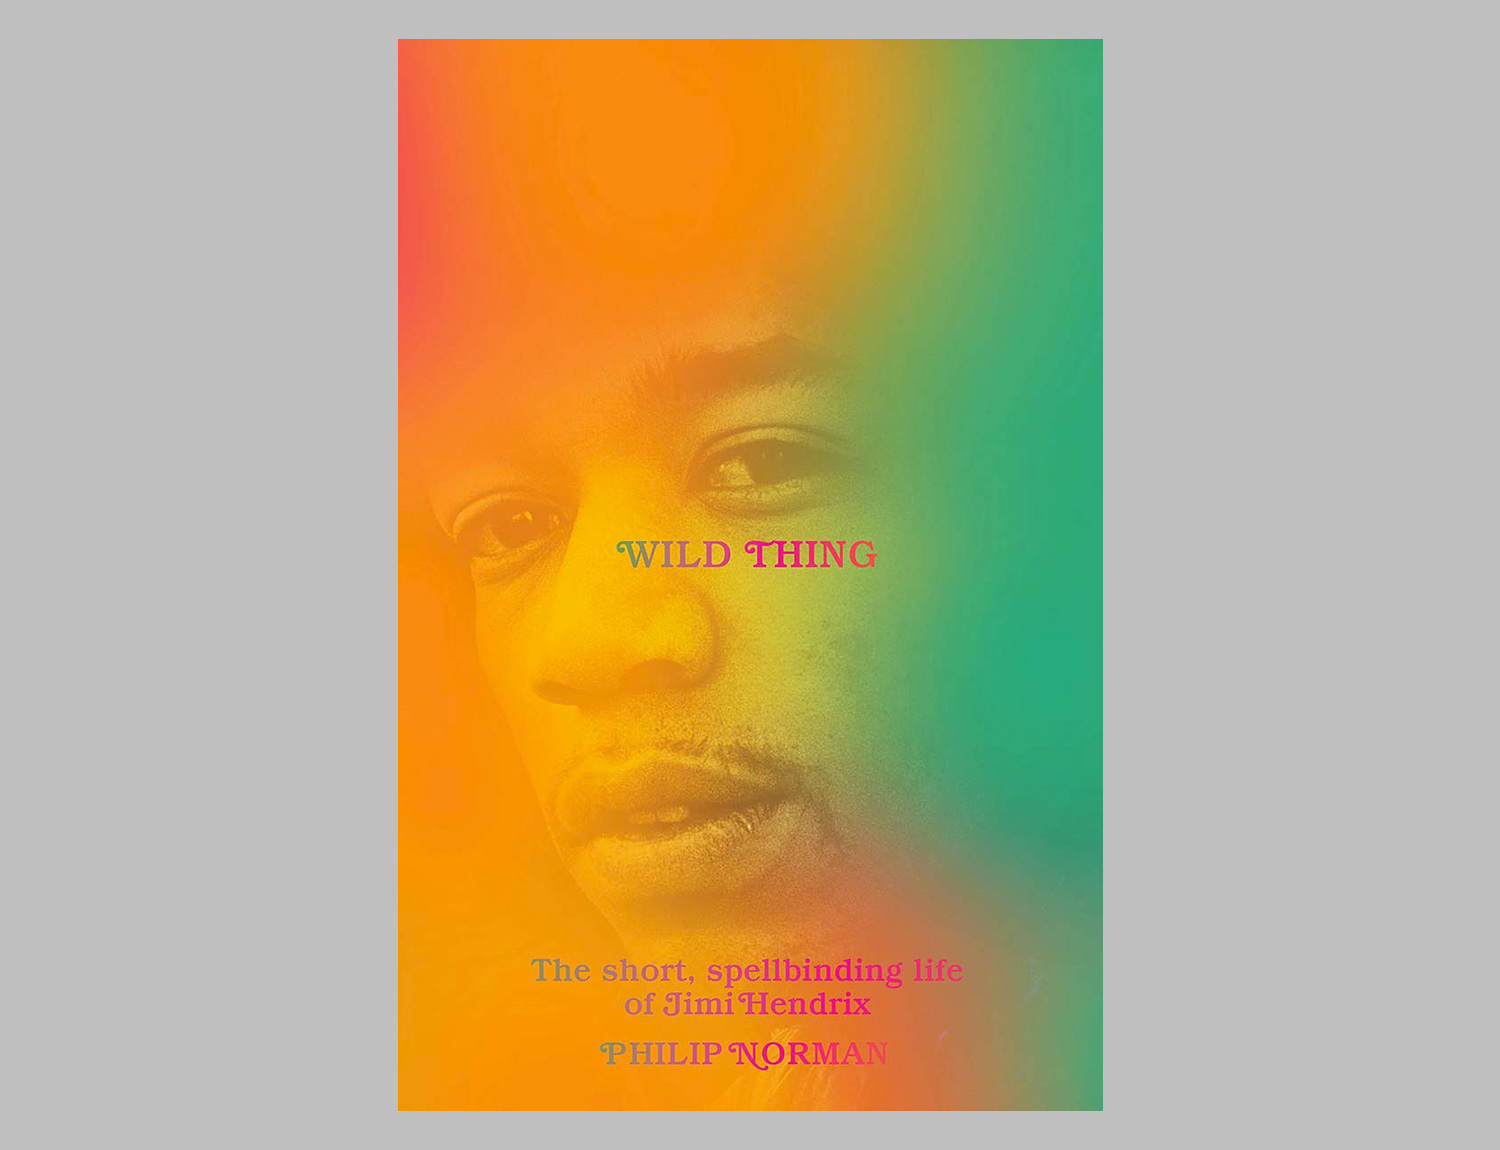 Wild Thing: The Short, Spellbinding Life of Jimi Hendrix at werd.com